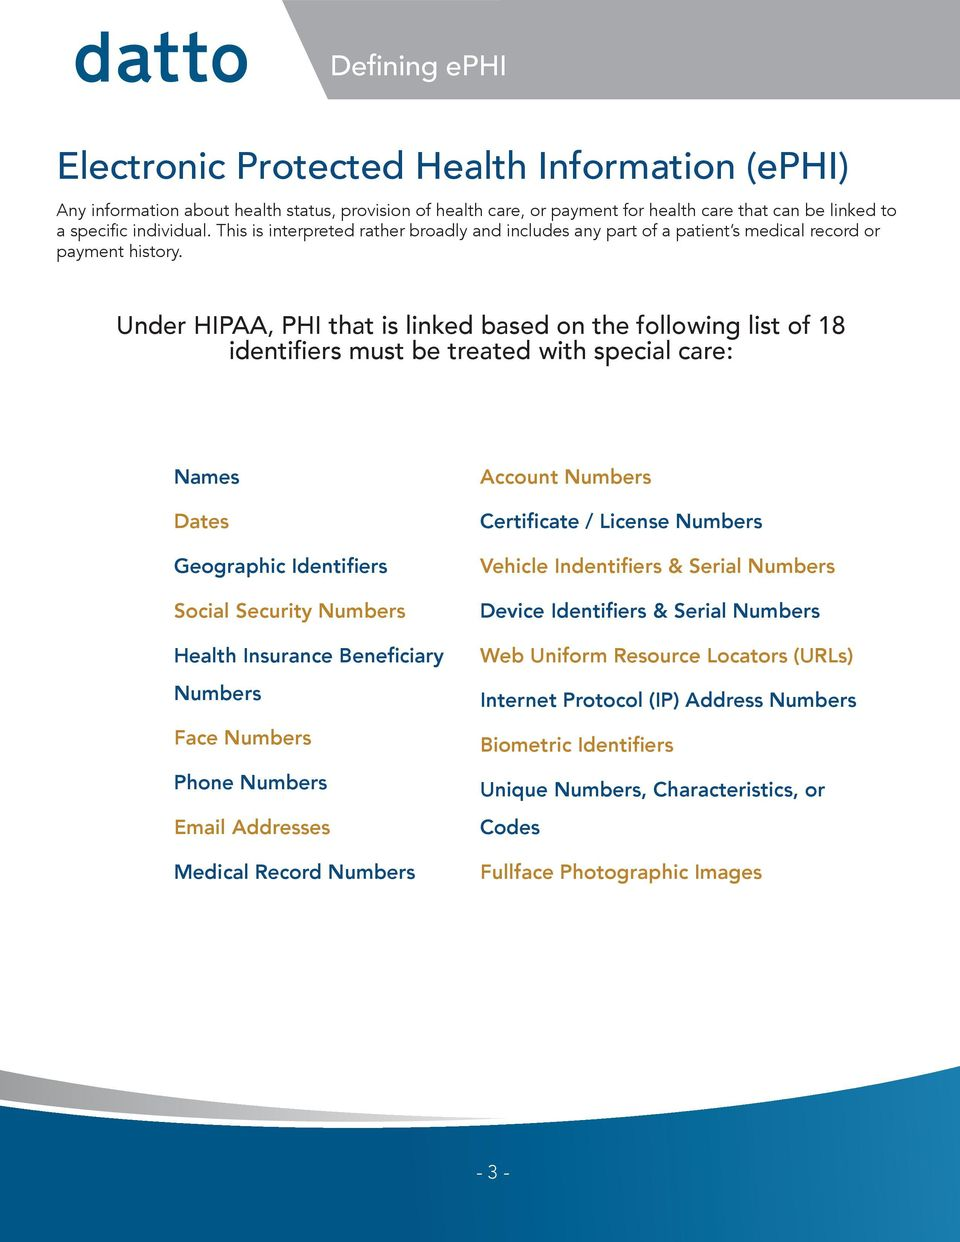 Under HIPAA, PHI that is linked based on the following list of 18 identifiers must be treated with special care: Names Dates Geographic Identifiers Social Security Numbers Health Insurance